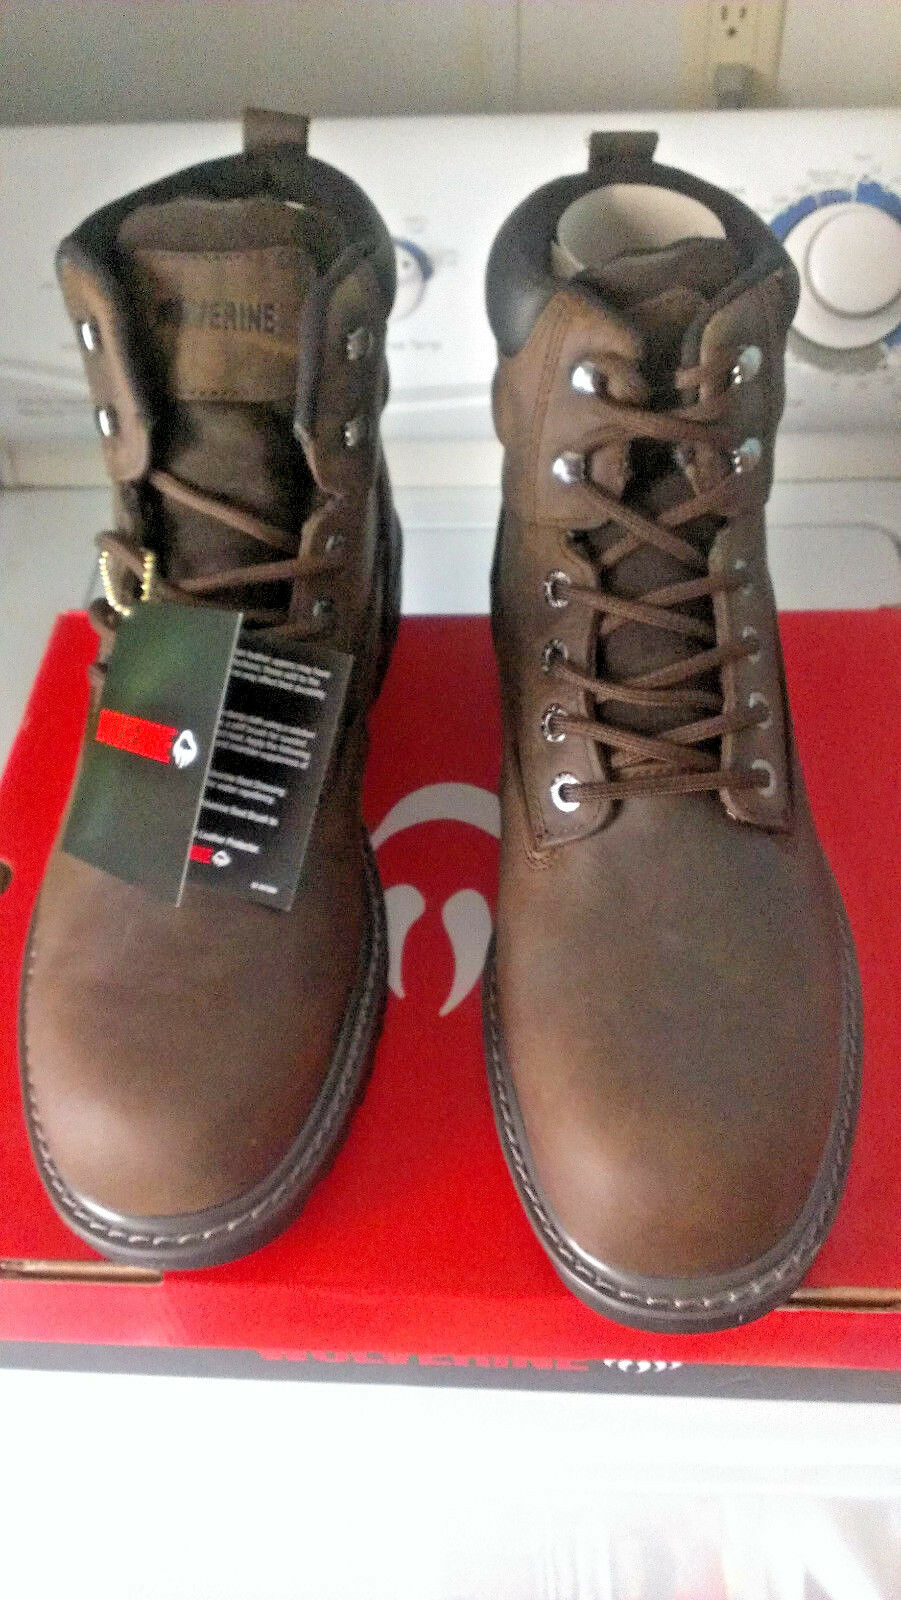 Wolverine Steel Toe Work Boots Floorhand W10633 12M (NEW IN BOX)